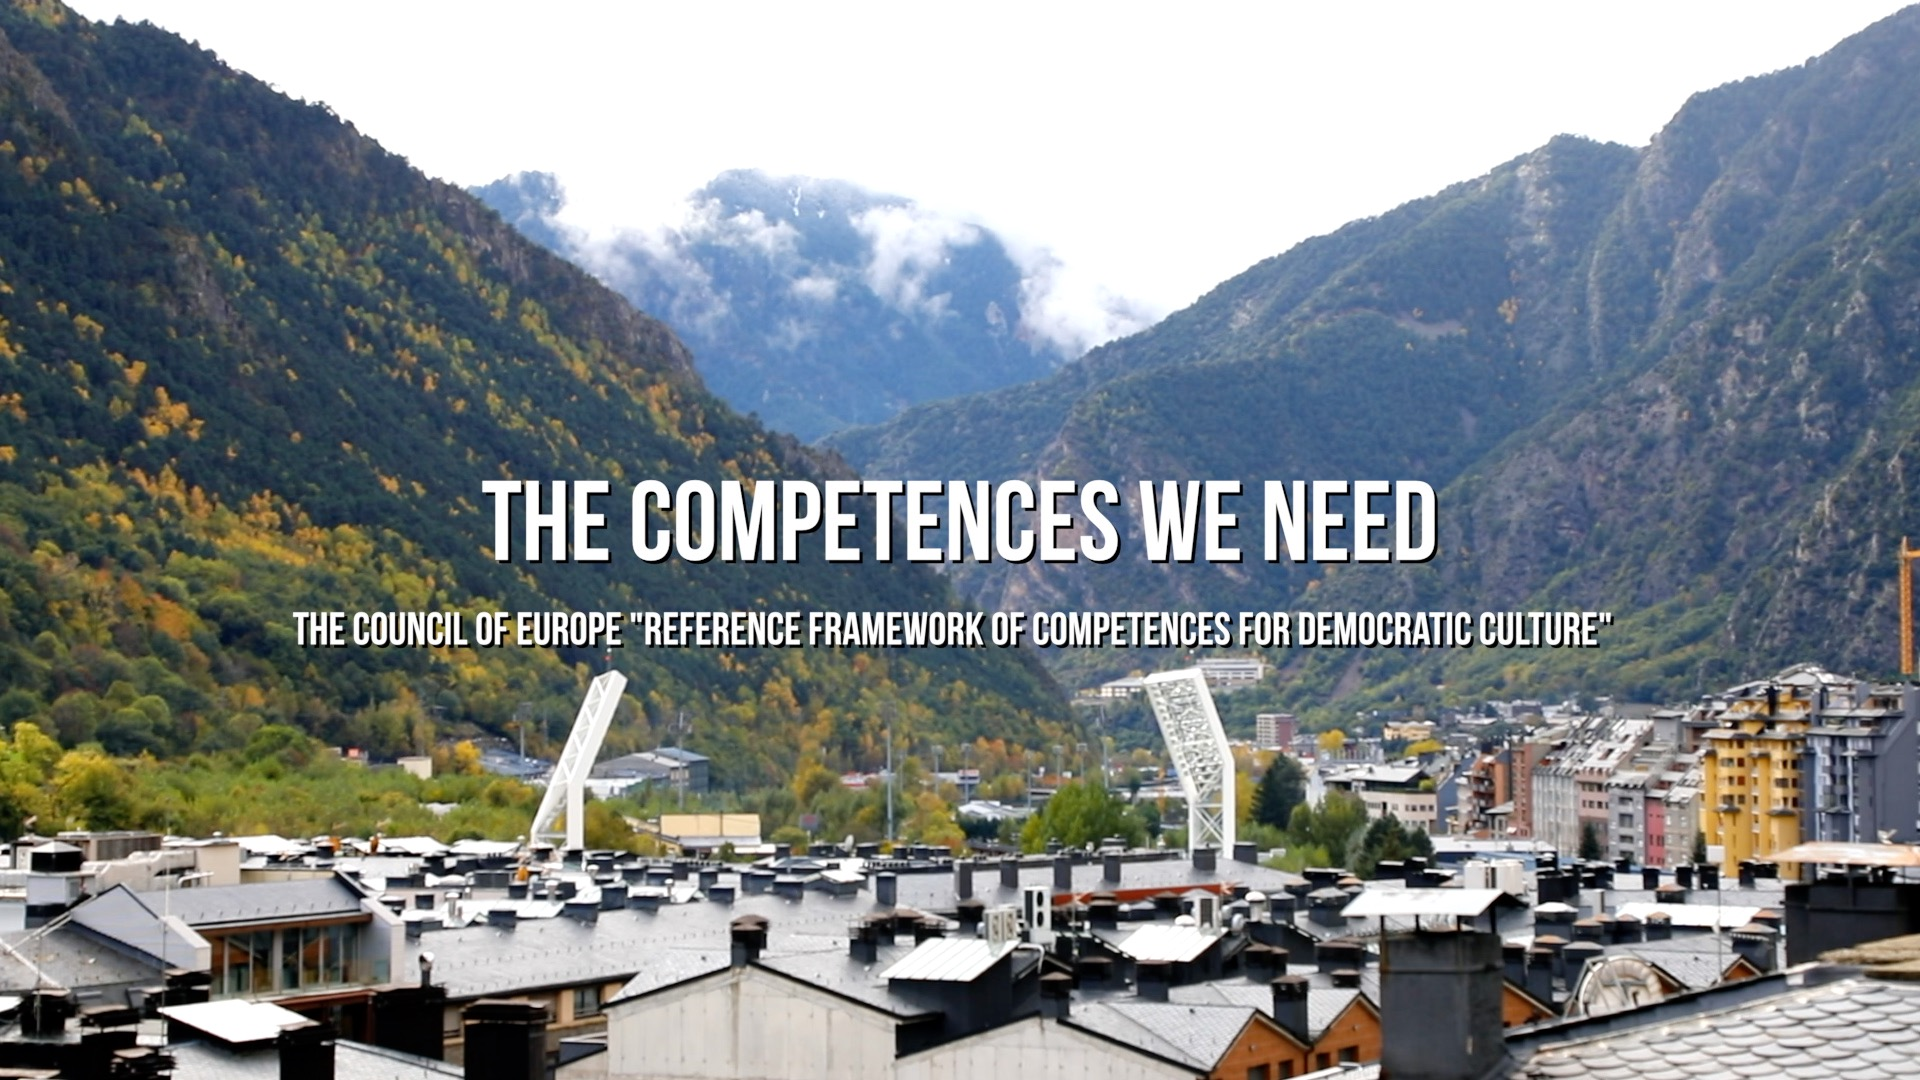 """The Competences we need"" - Documentary on the Council of Europe Reference Framework of Competences for Democratic Culture (RFCDC)"